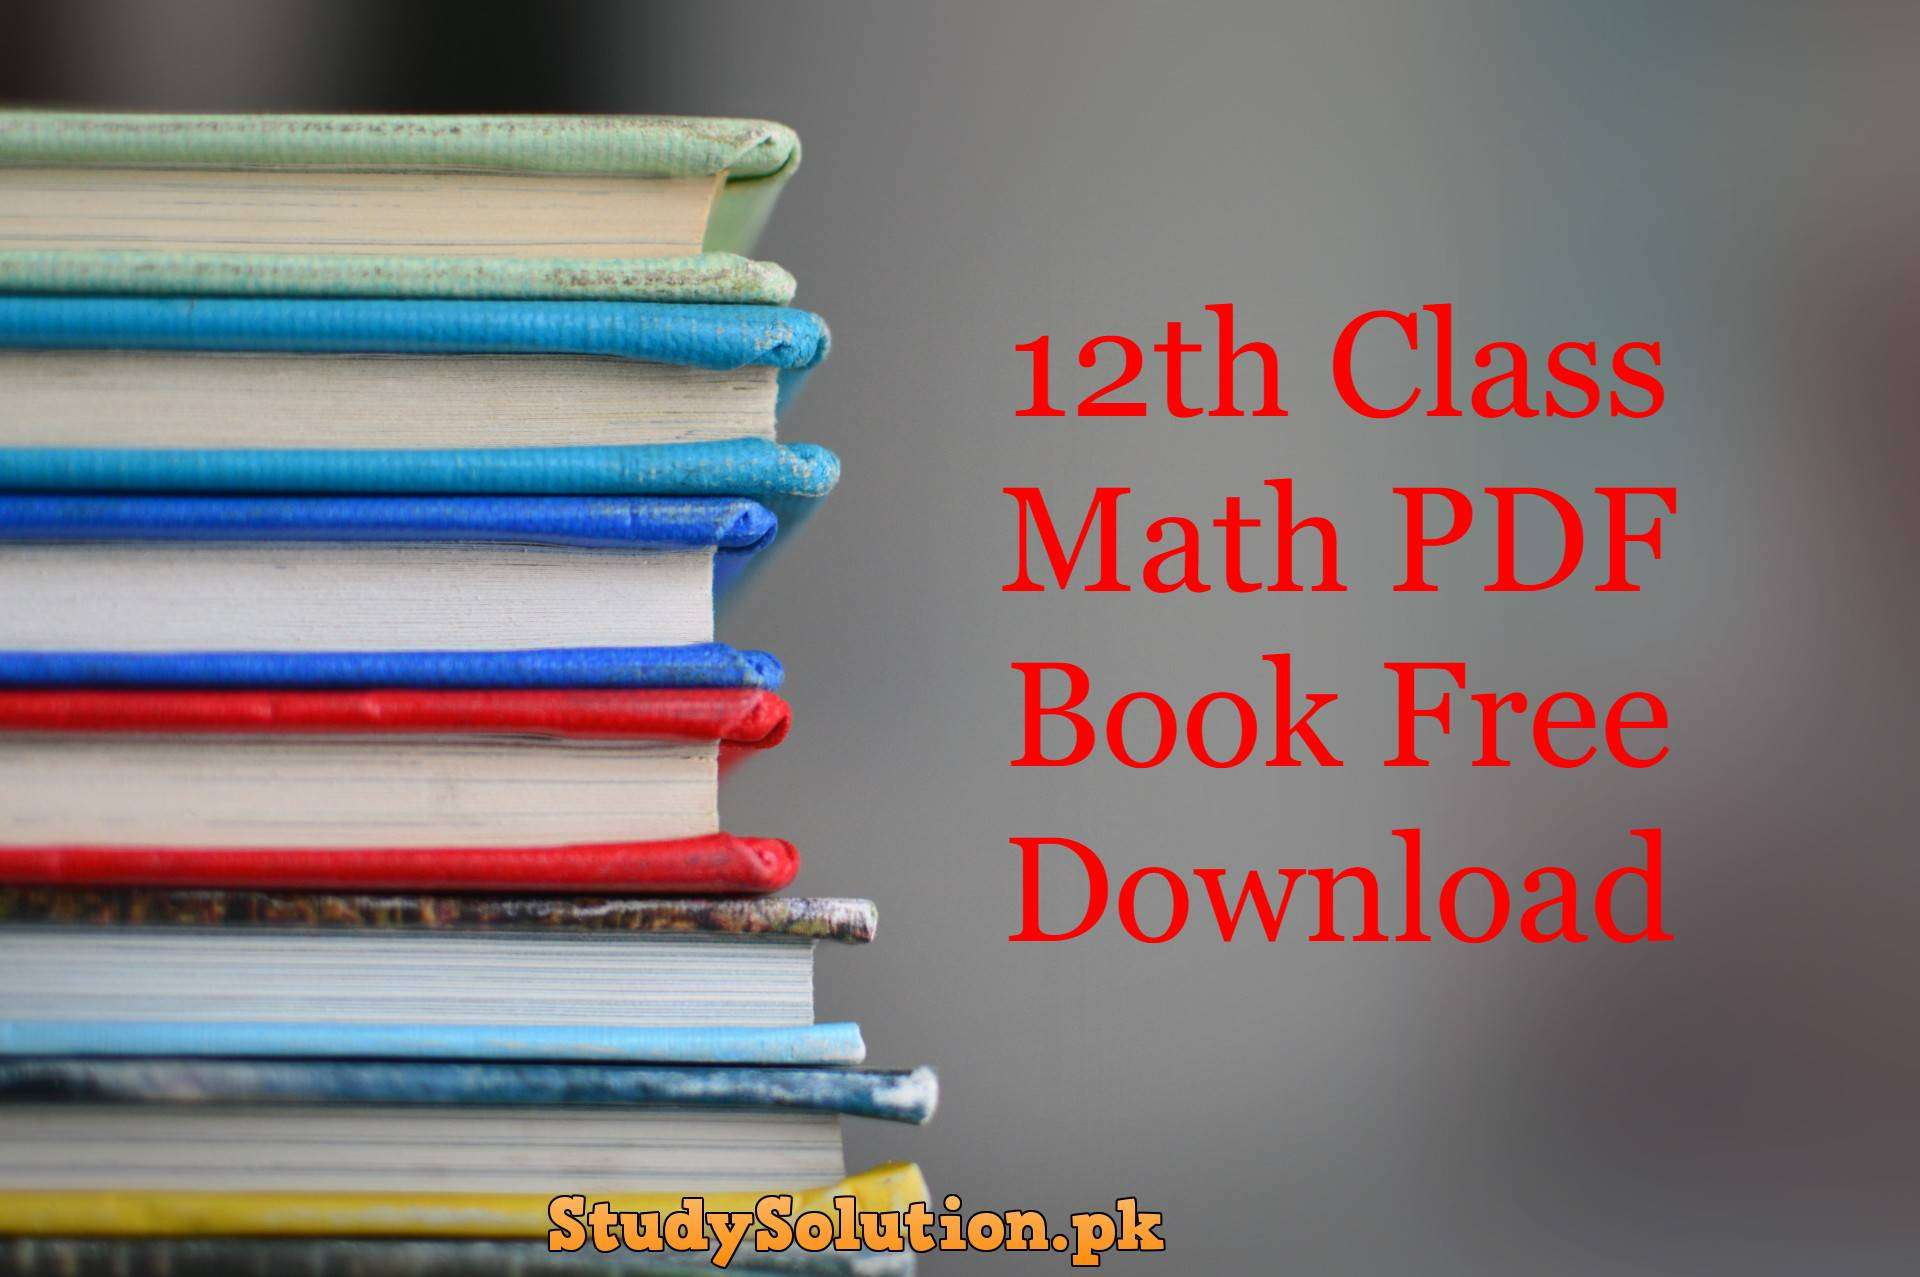 12th Class Math PDF Book Free Download